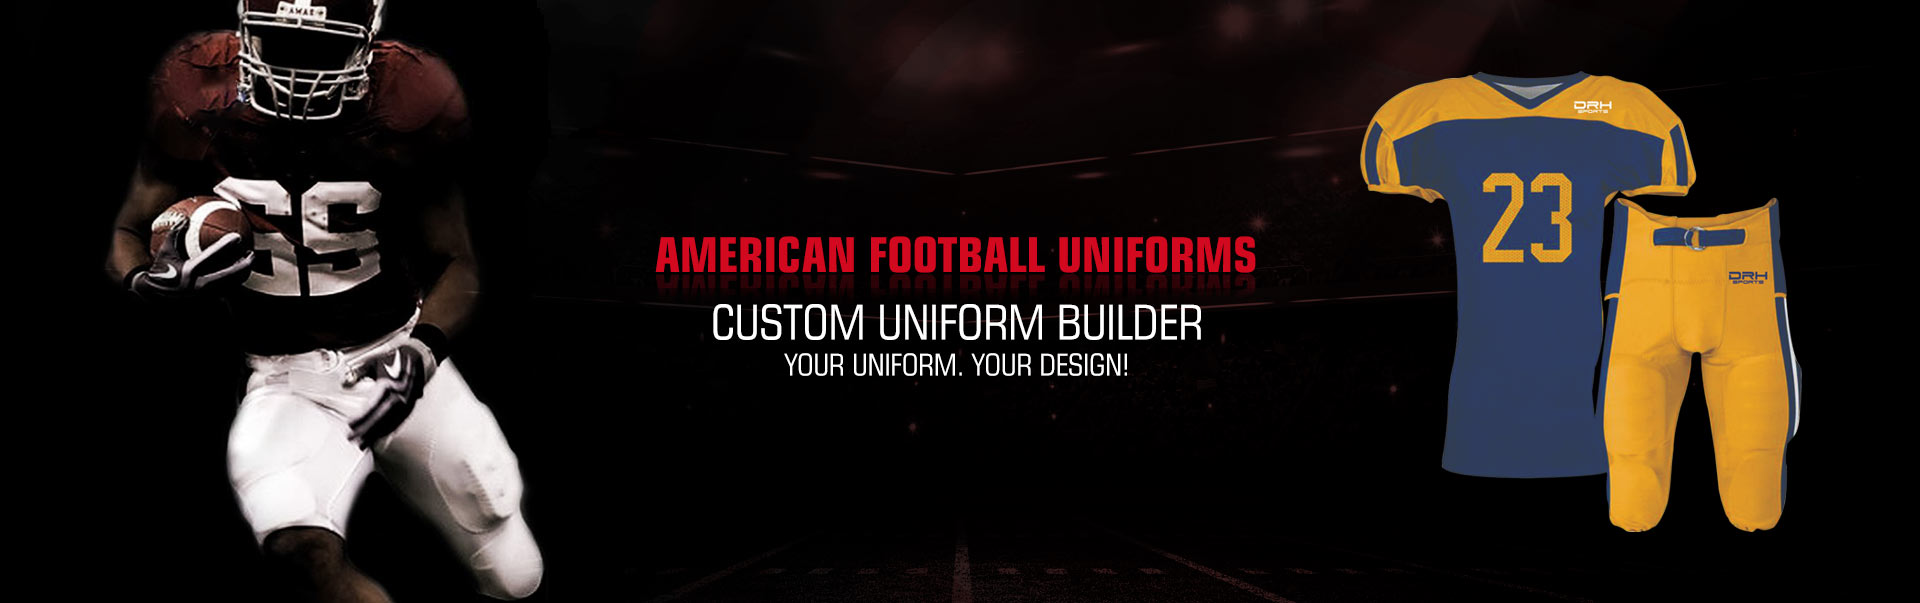 American Football Uniform Wholesaler, Suppliers in Eugene